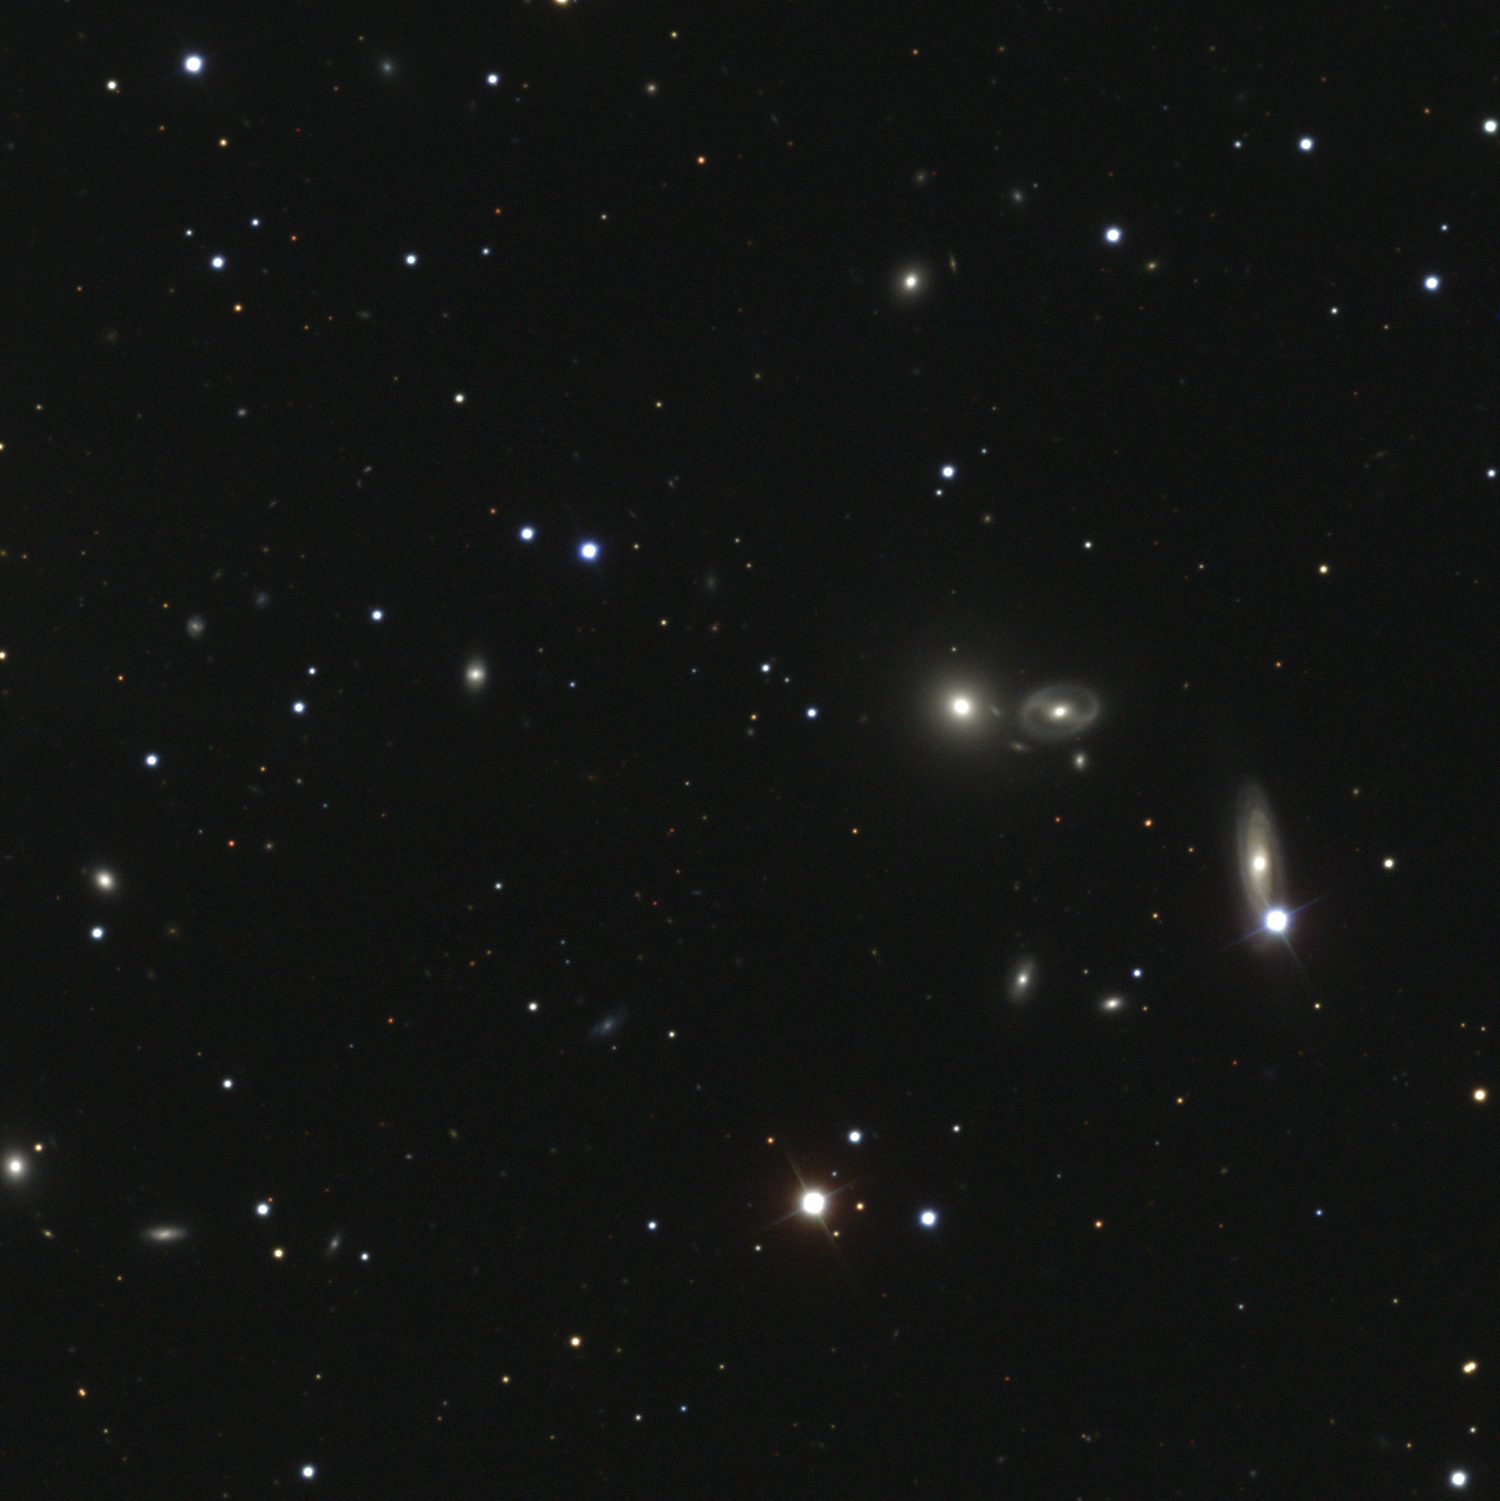 Background image stretch -  The Asinh Stretch Is Often Very Good For Picking Out Detail In Many Images Particularly Those Like Sdss With Galaxies On A Mostly Black Background